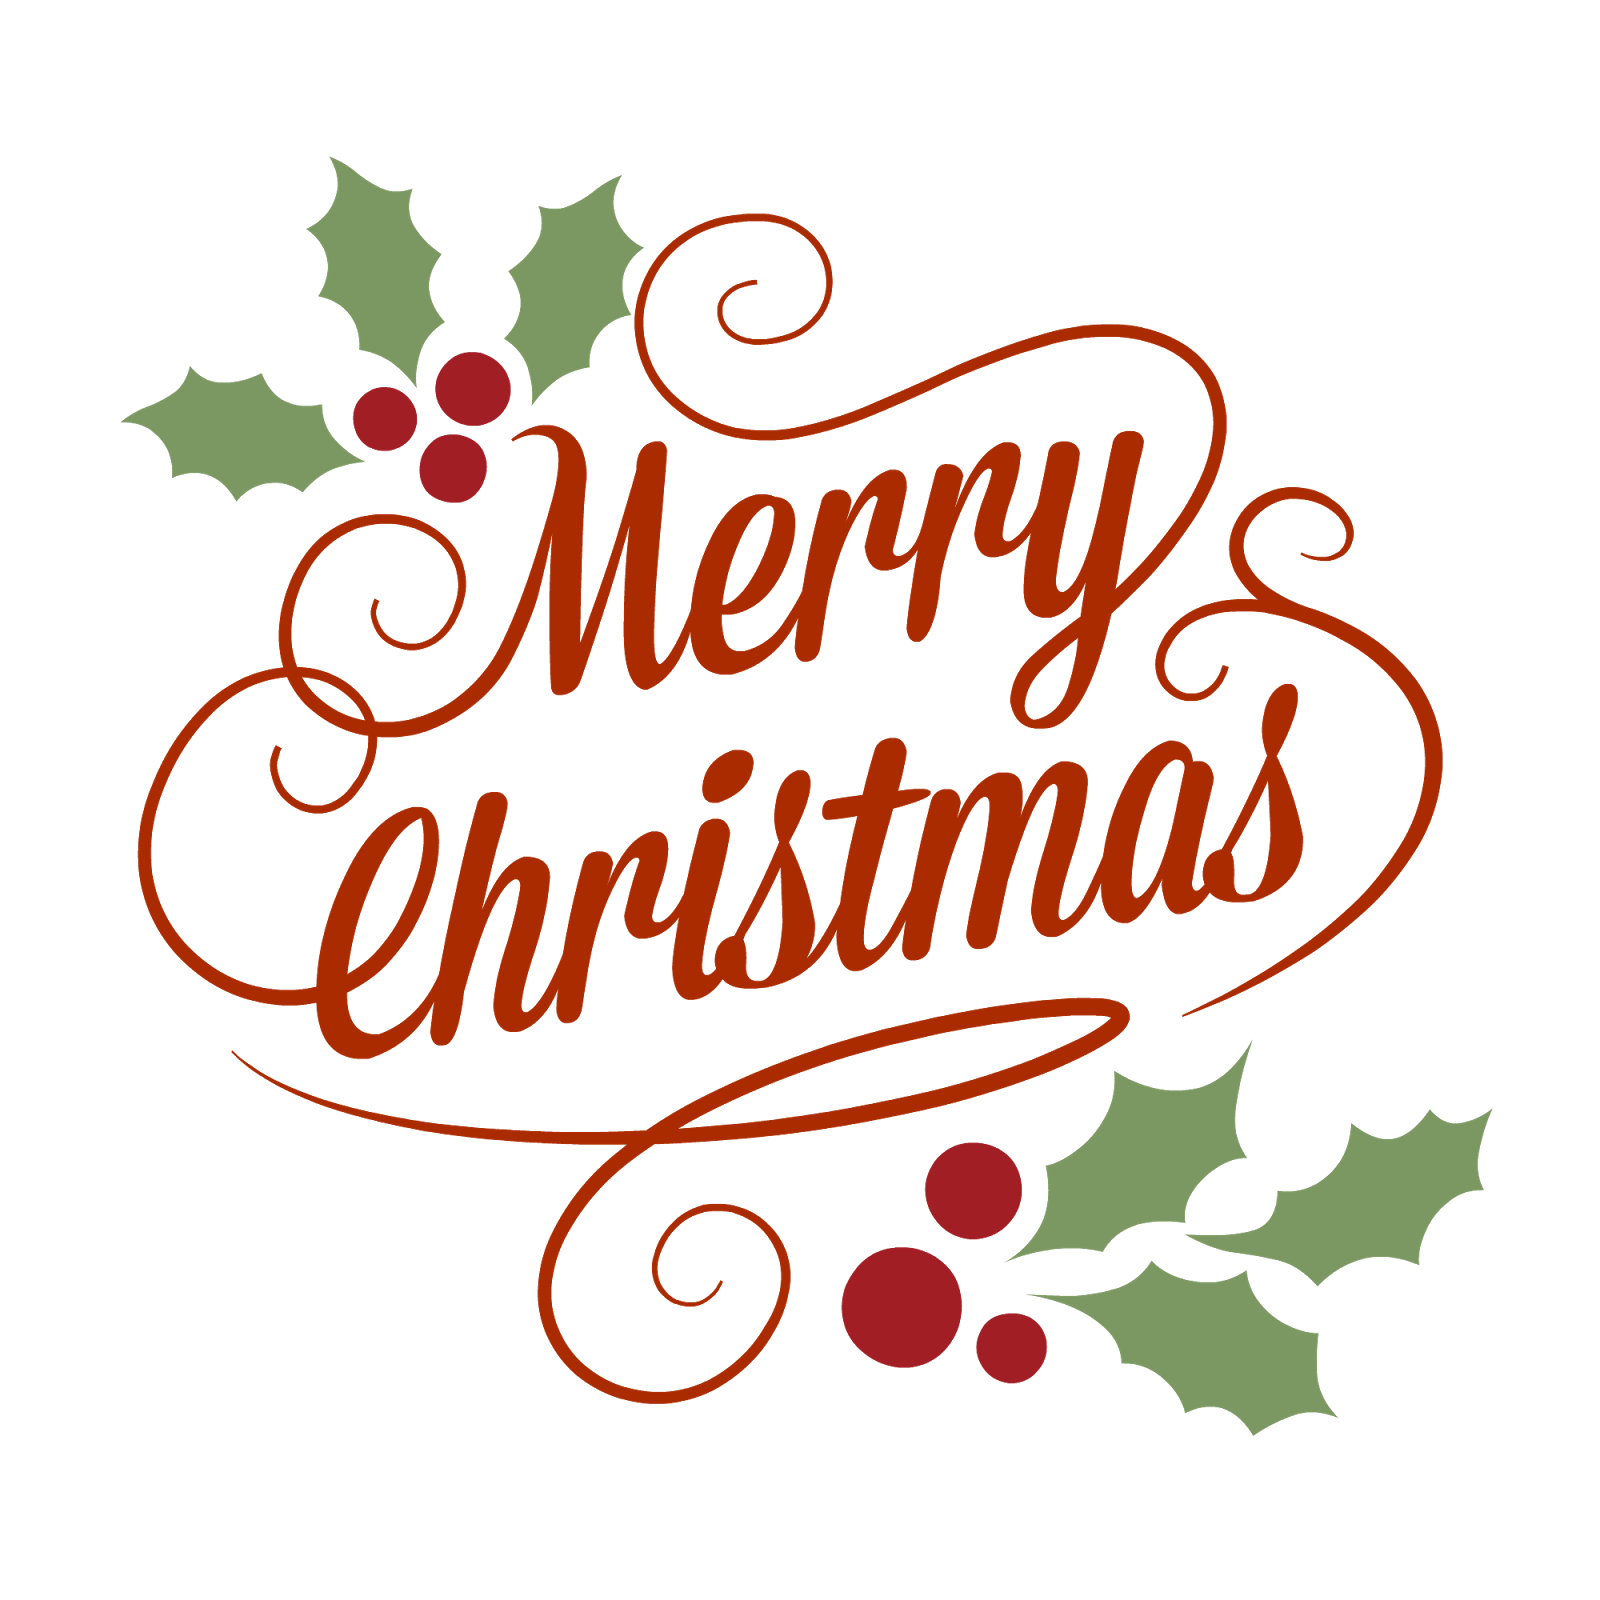 Christmas blessings clipart transparent library aktari24 : I will make an unique tshirt design for $10 on www ... transparent library